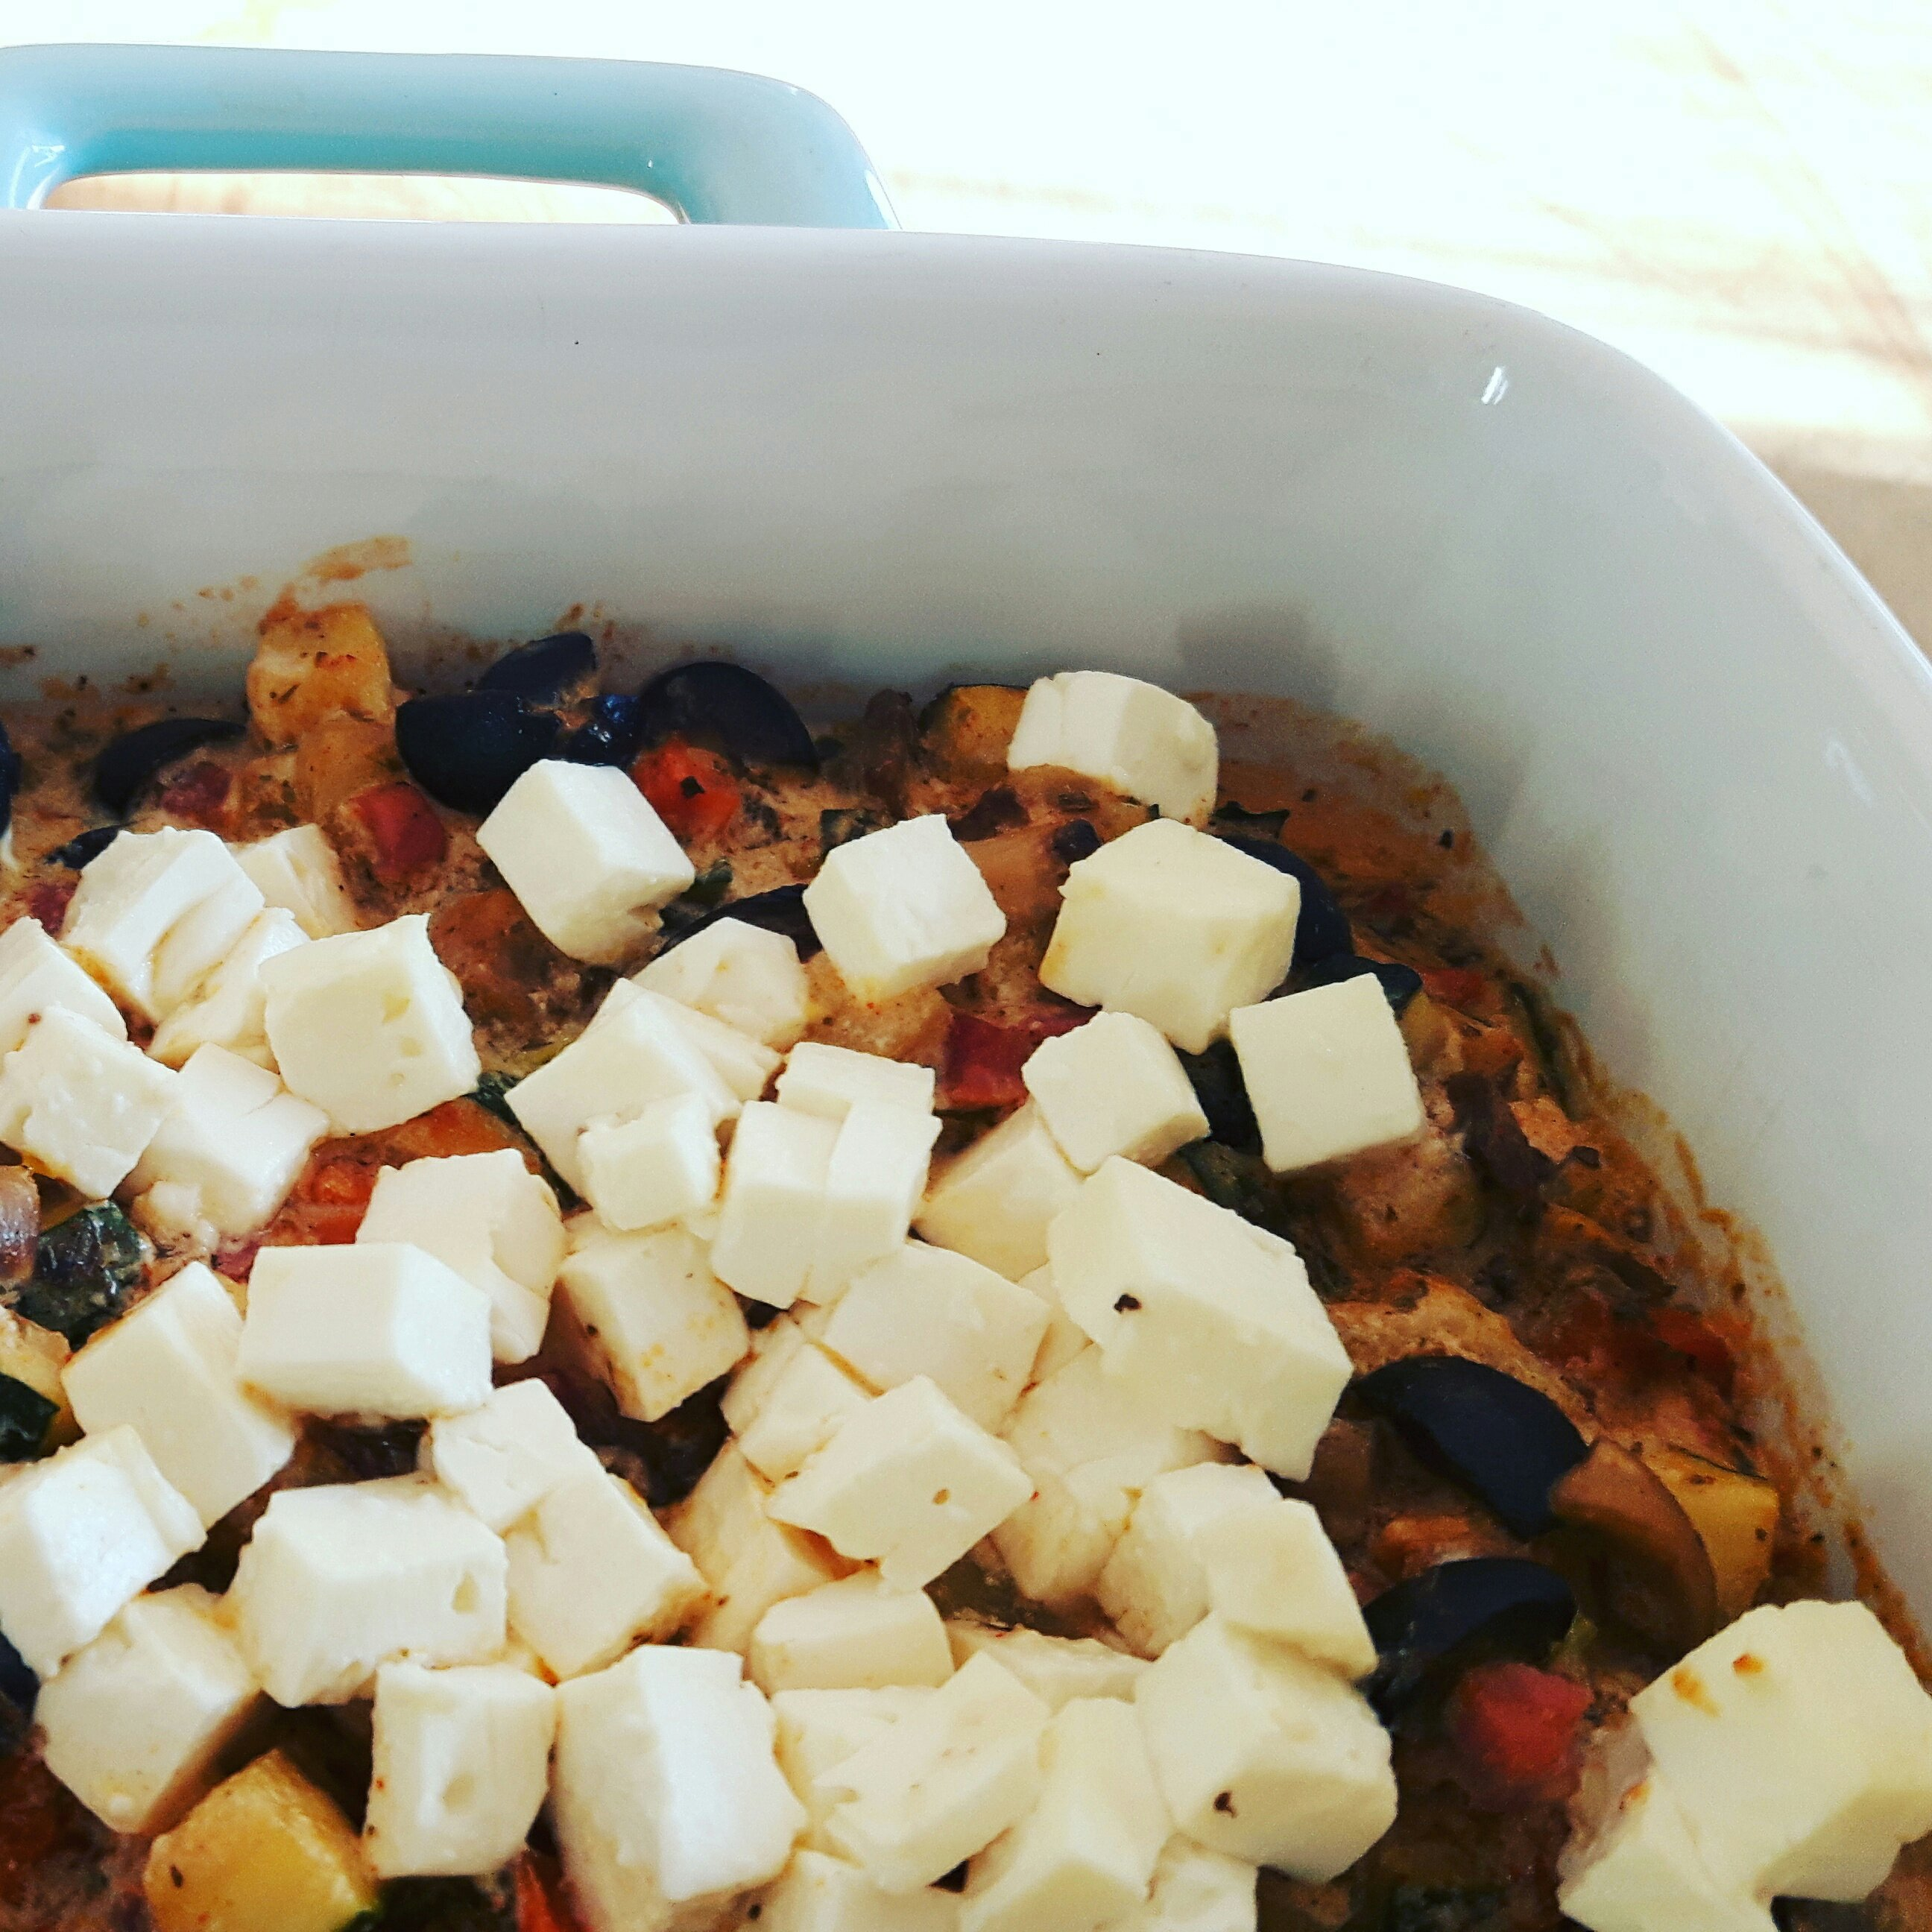 Greek Veggie Feta Casserole recipe